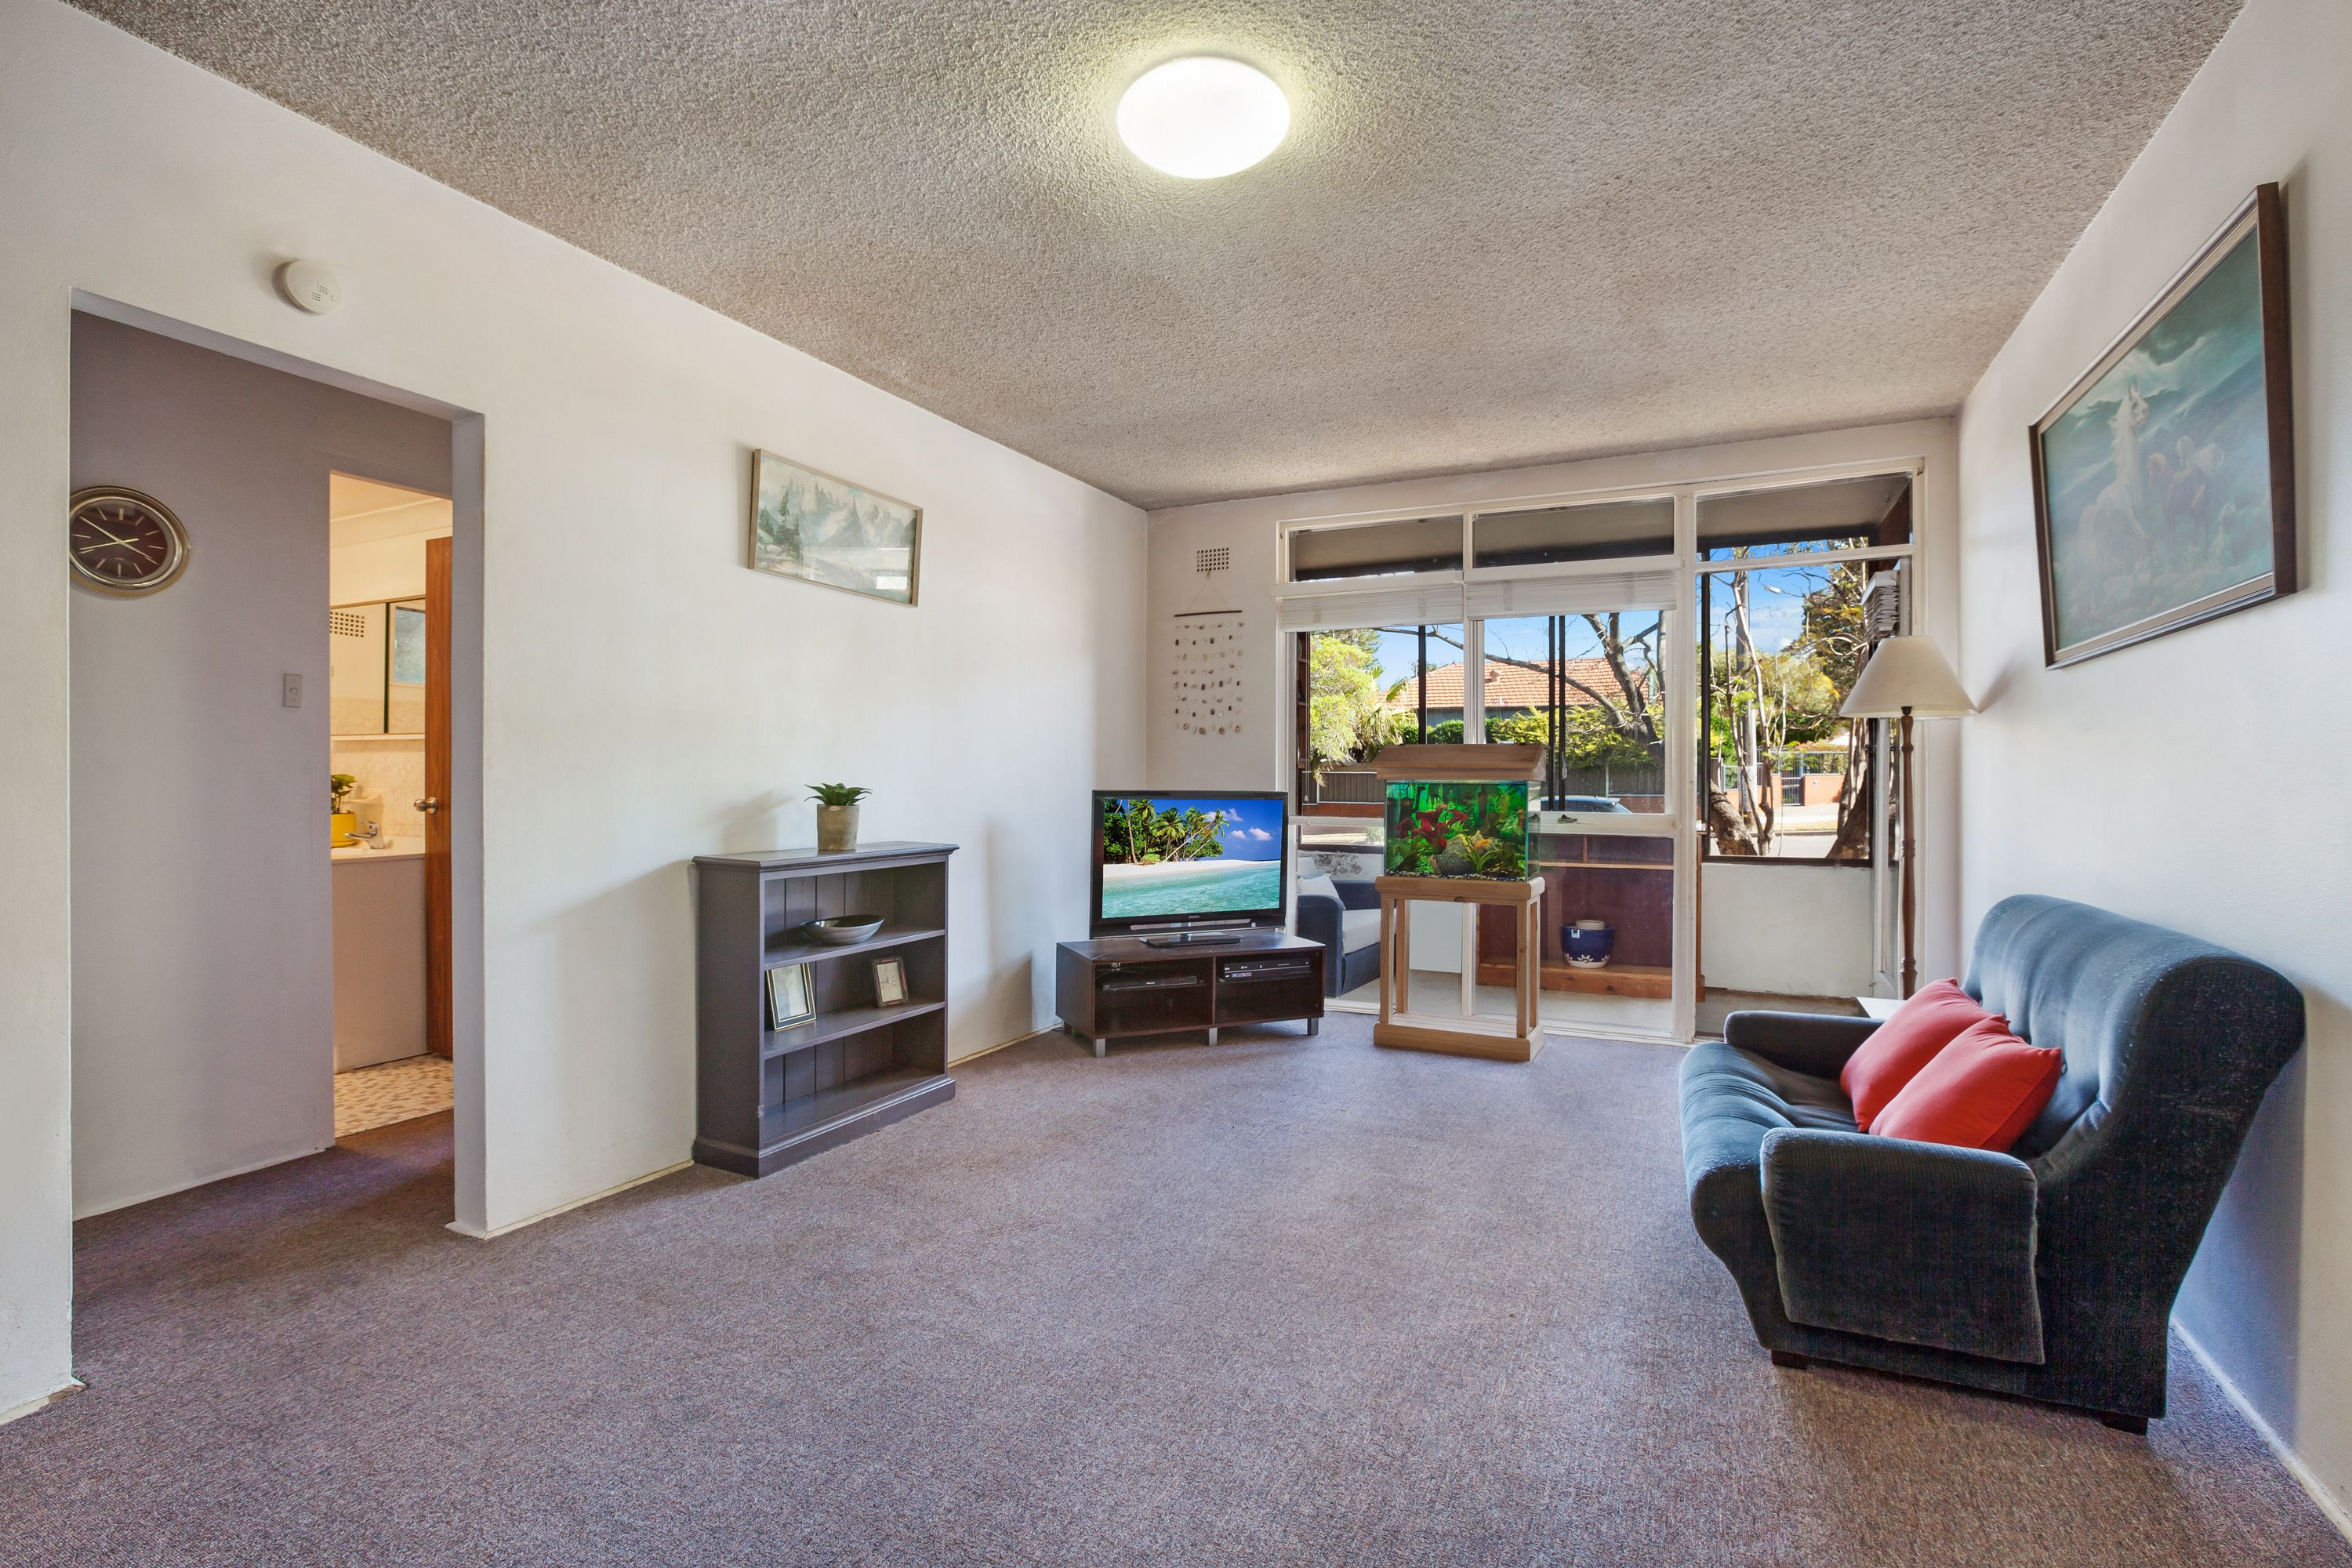 2/53 Gipps Street Concord 2137